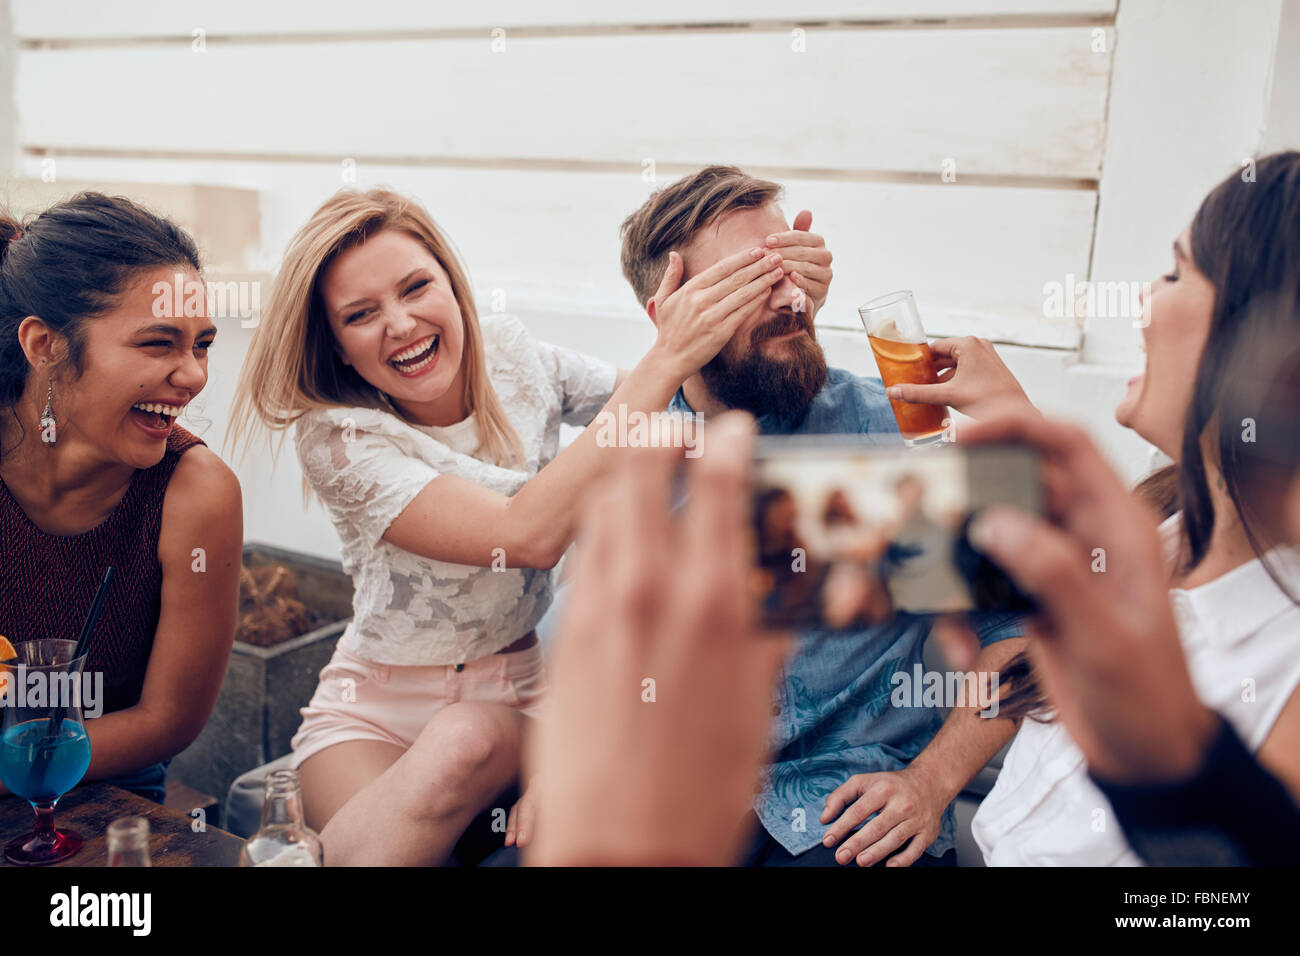 Group of friends having fun at a party with man taking a photo on a smart phone. Young people enjoying a party together. - Stock Image